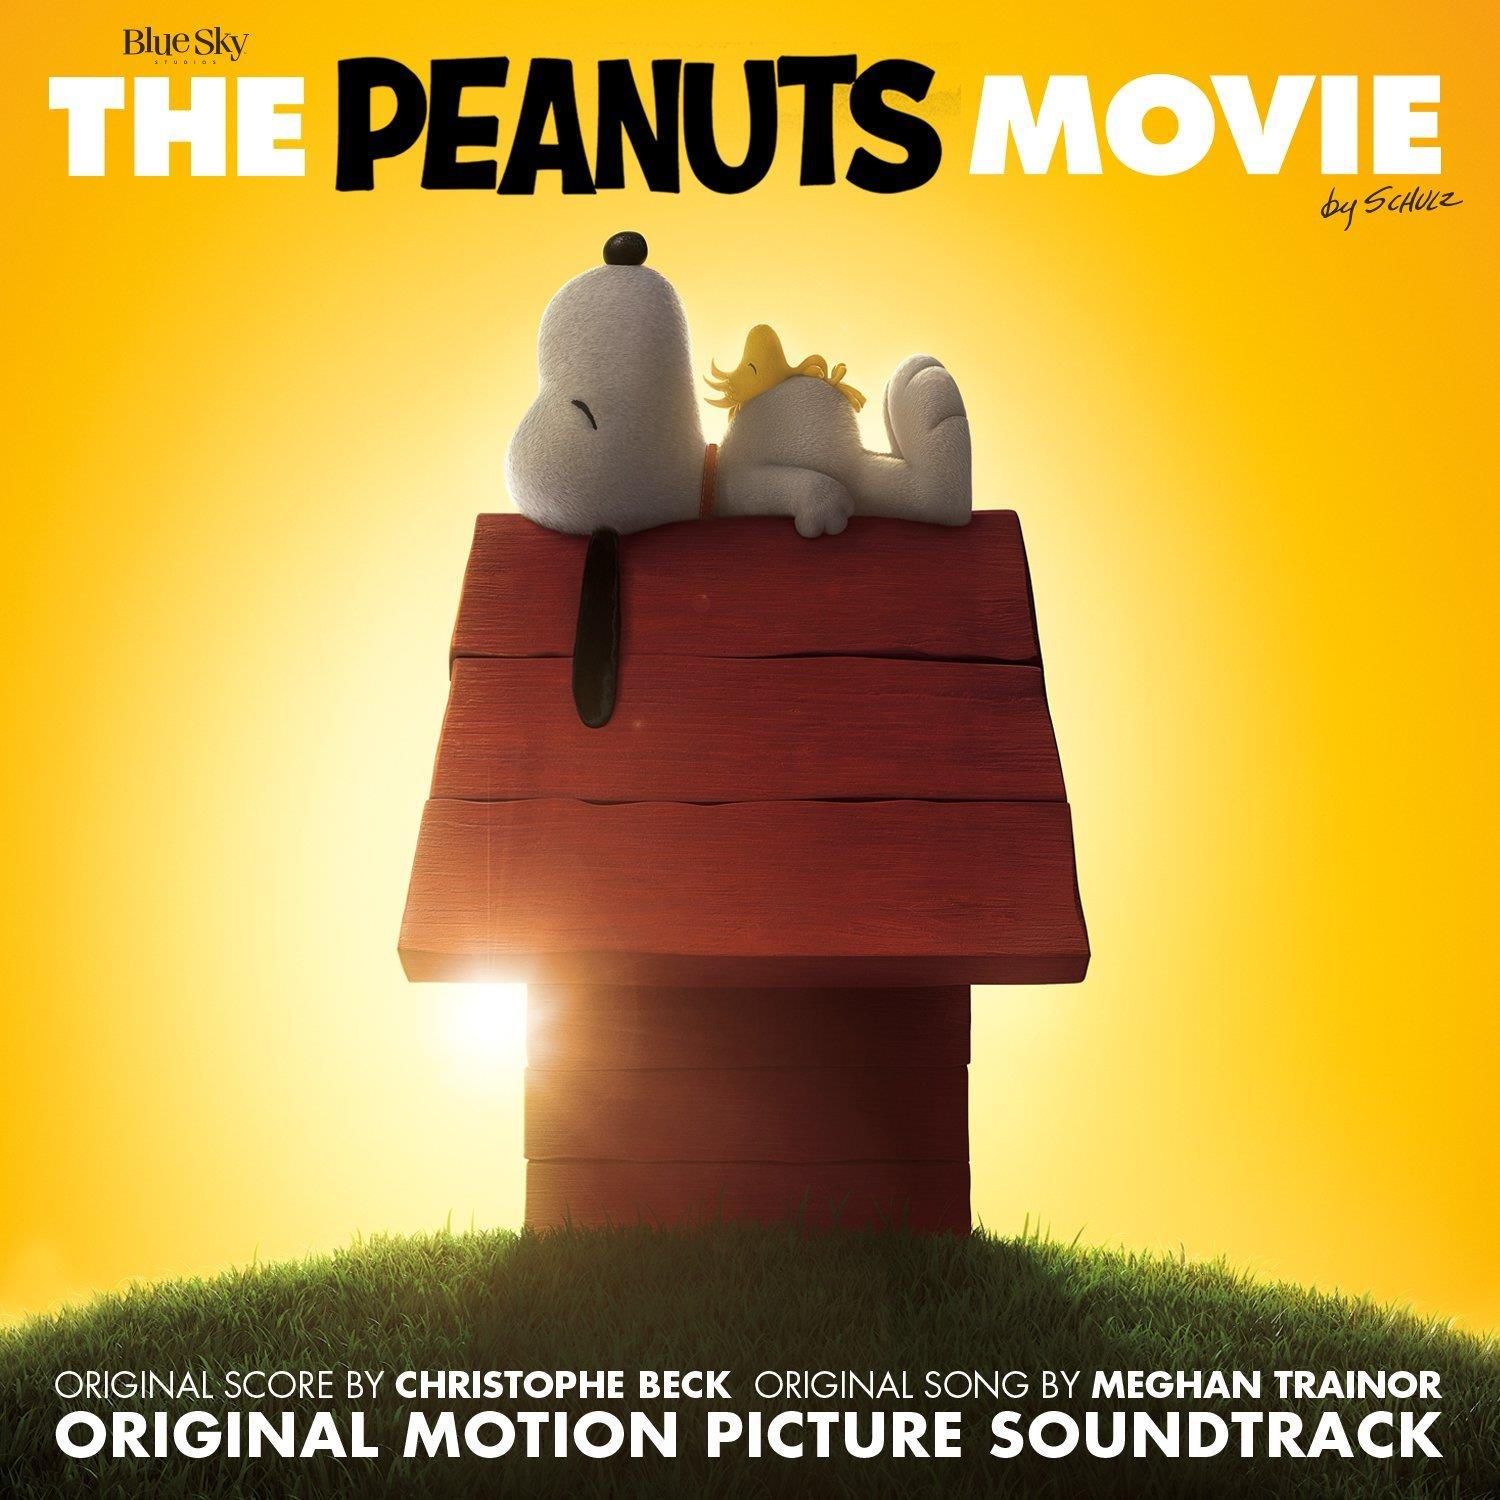 La copertina ufficiale della soundtrack di The Peanuts Movie by Christophe Beck